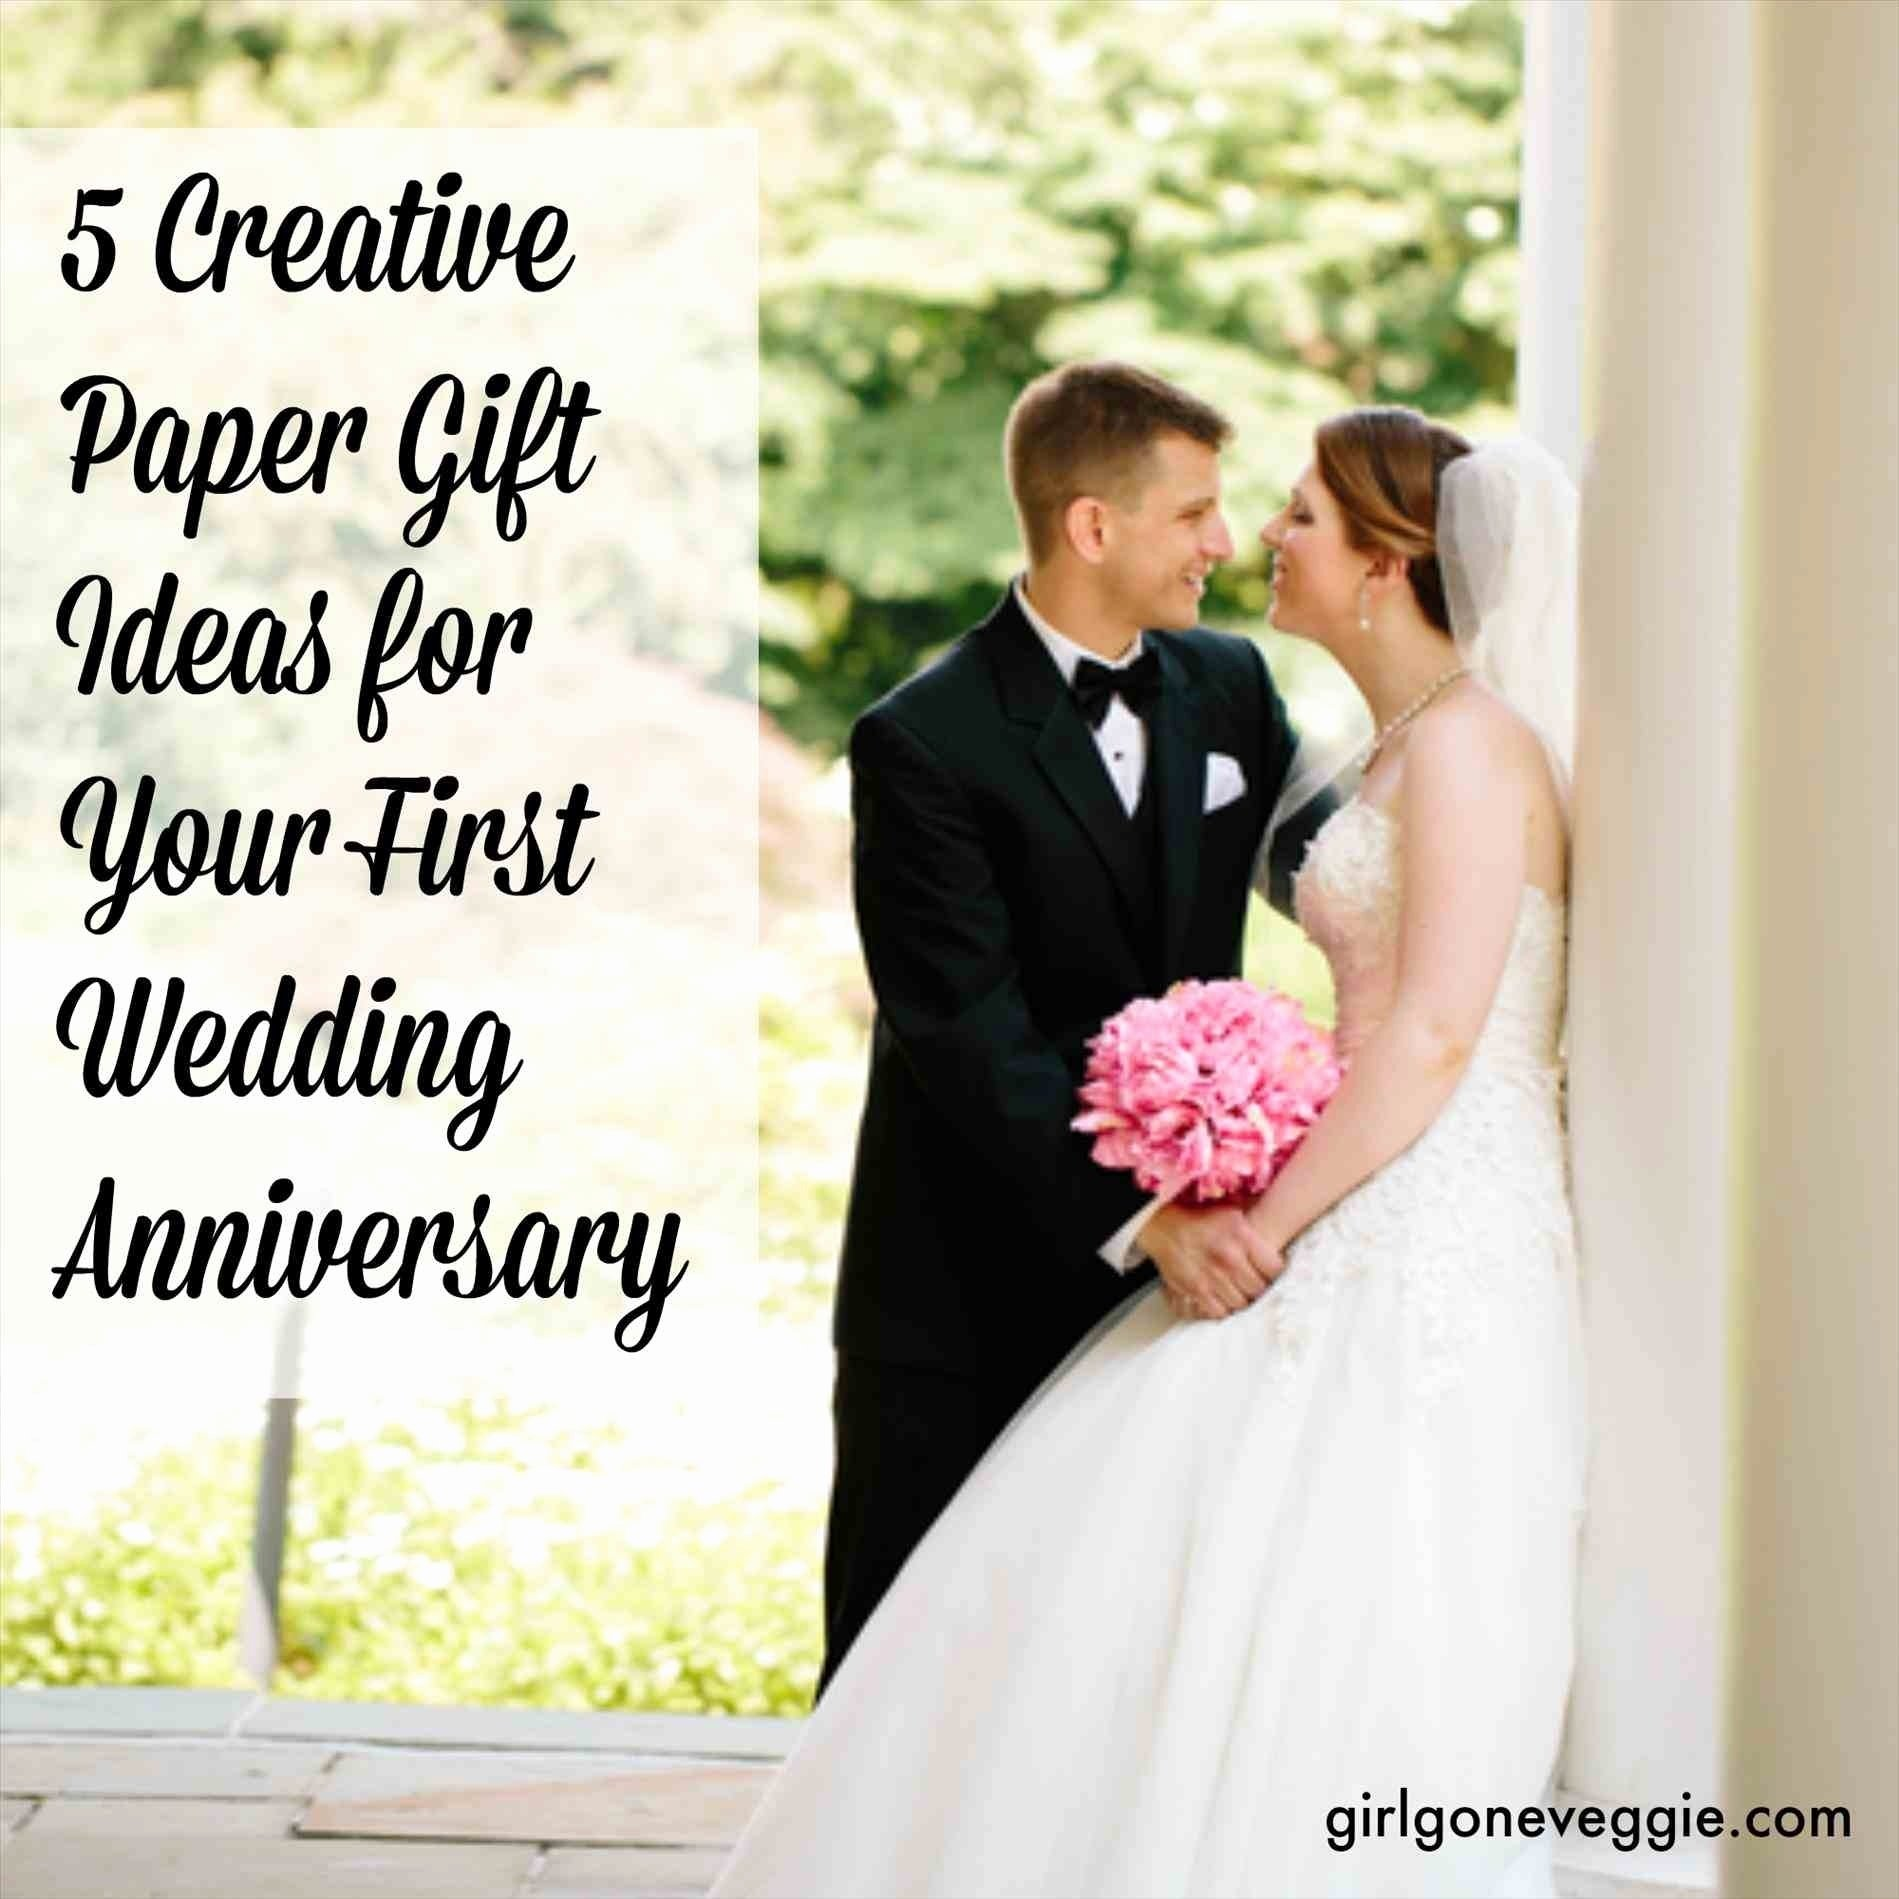 10 Great First Year Wedding Anniversary Ideas 50 awesome 1st wedding anniversary gift ideas for him wedding 2020